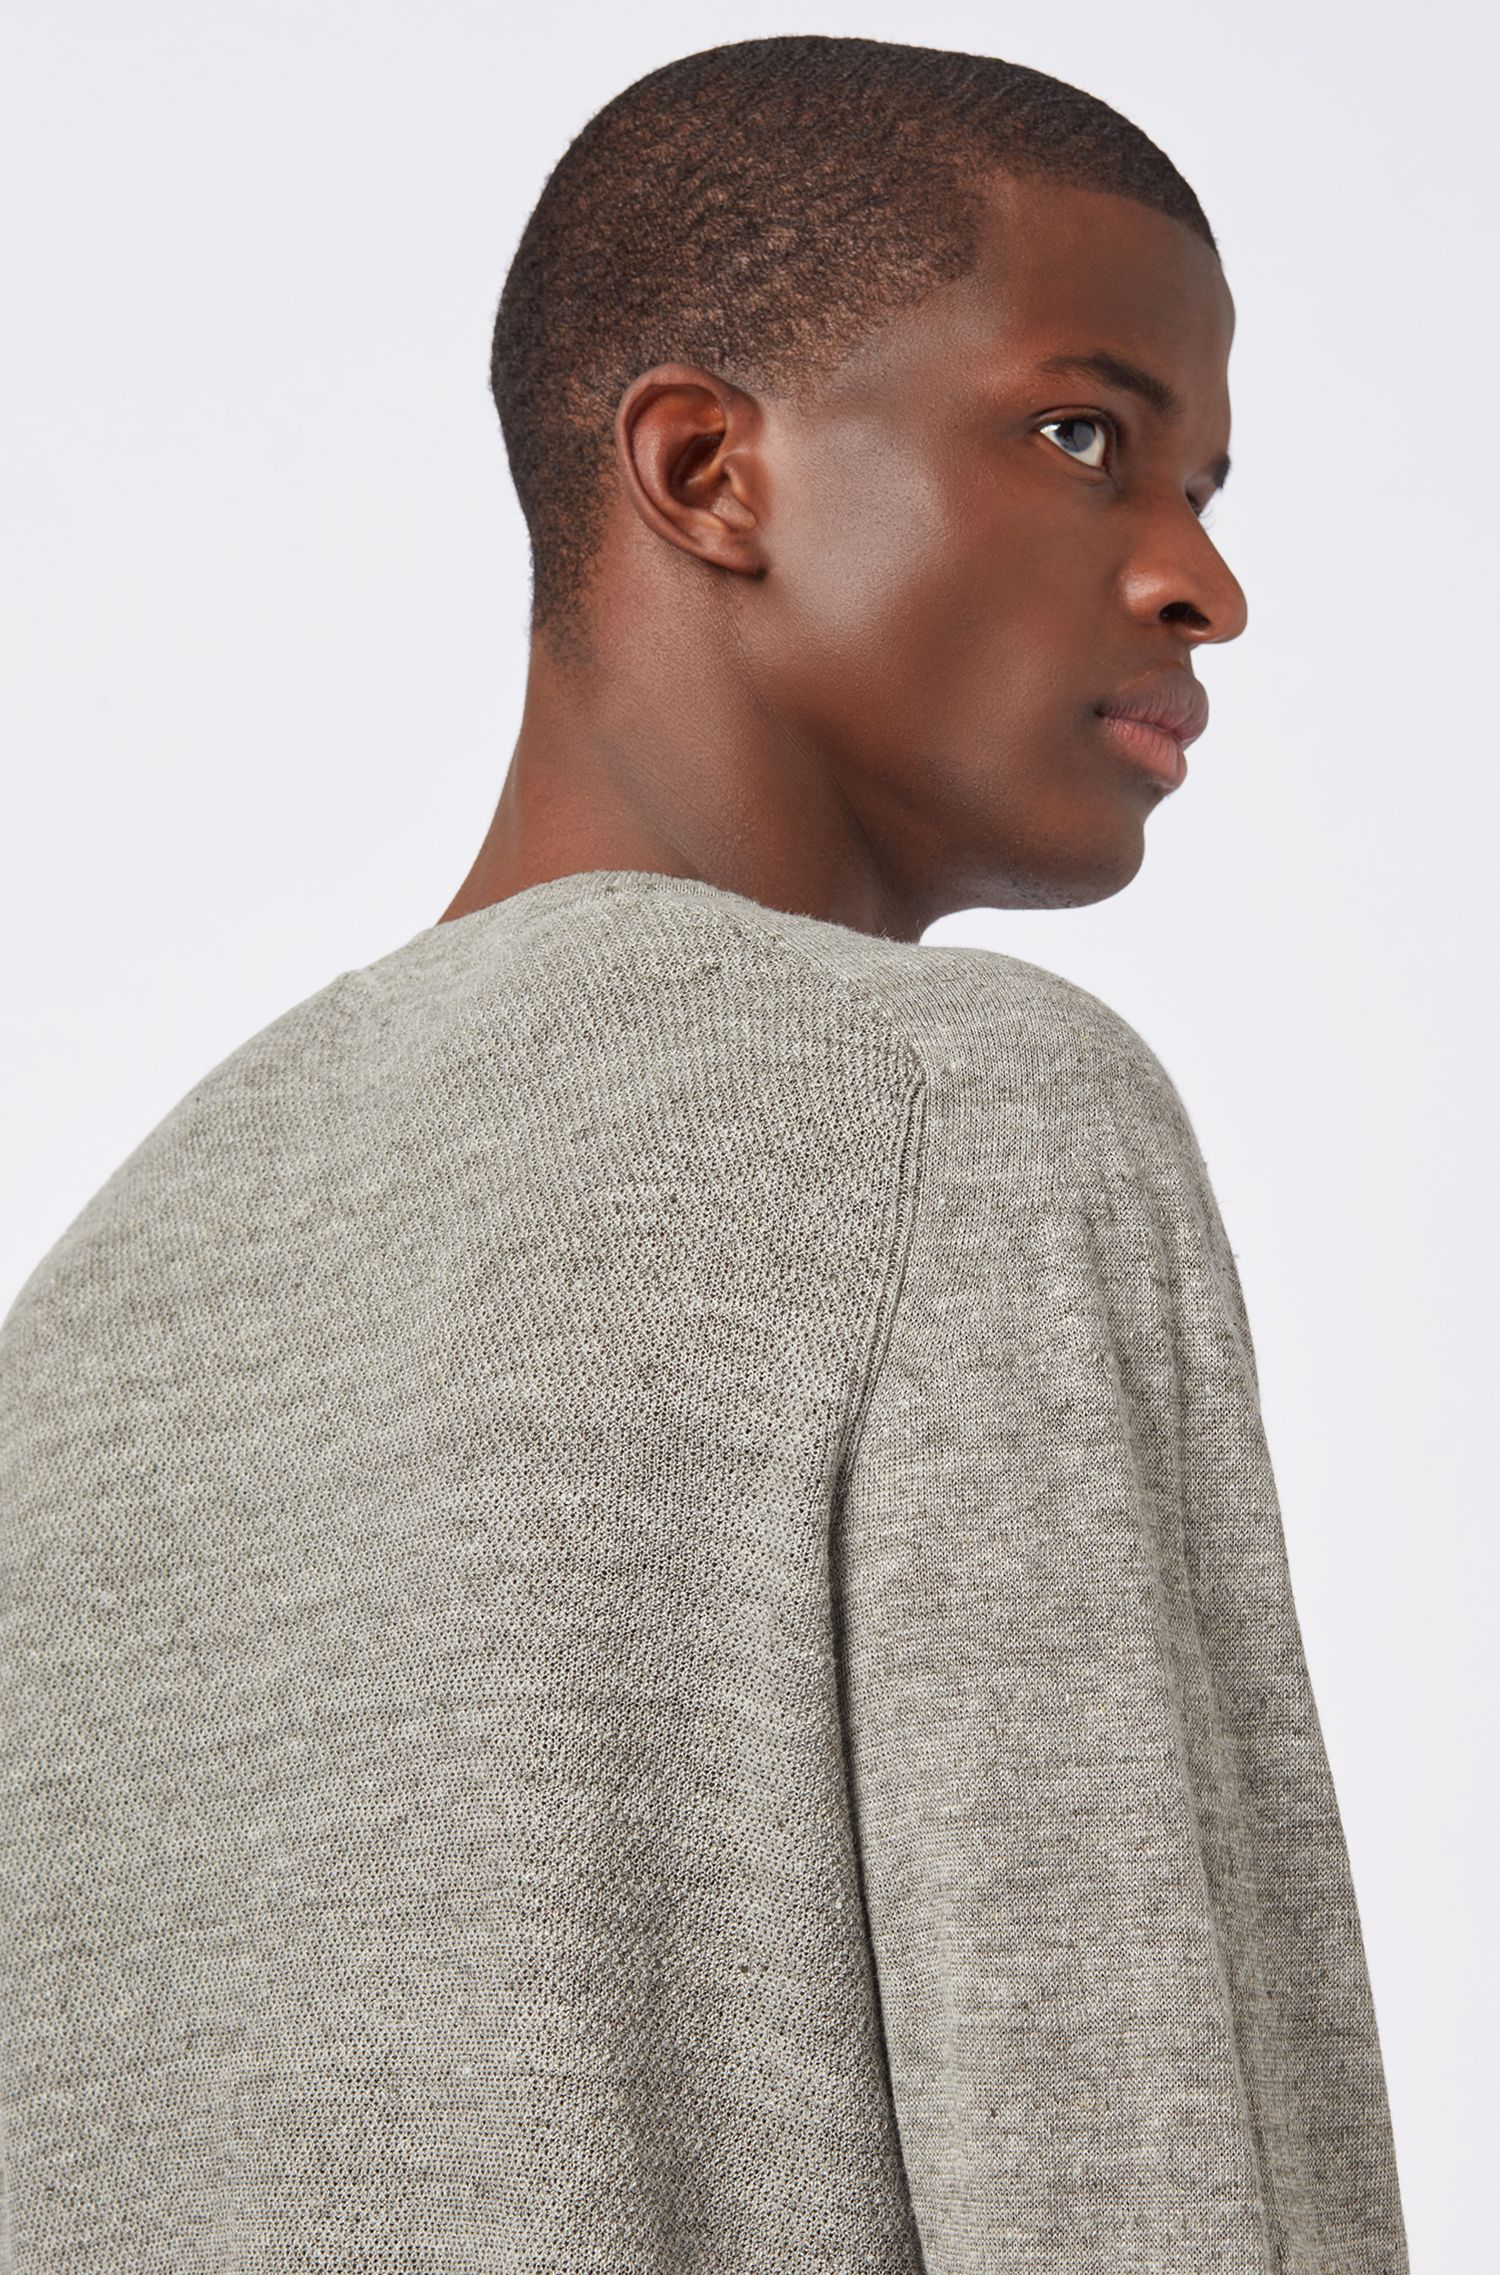 Micro-structured sweater in melange linen with ottoman detailing, Light Grey